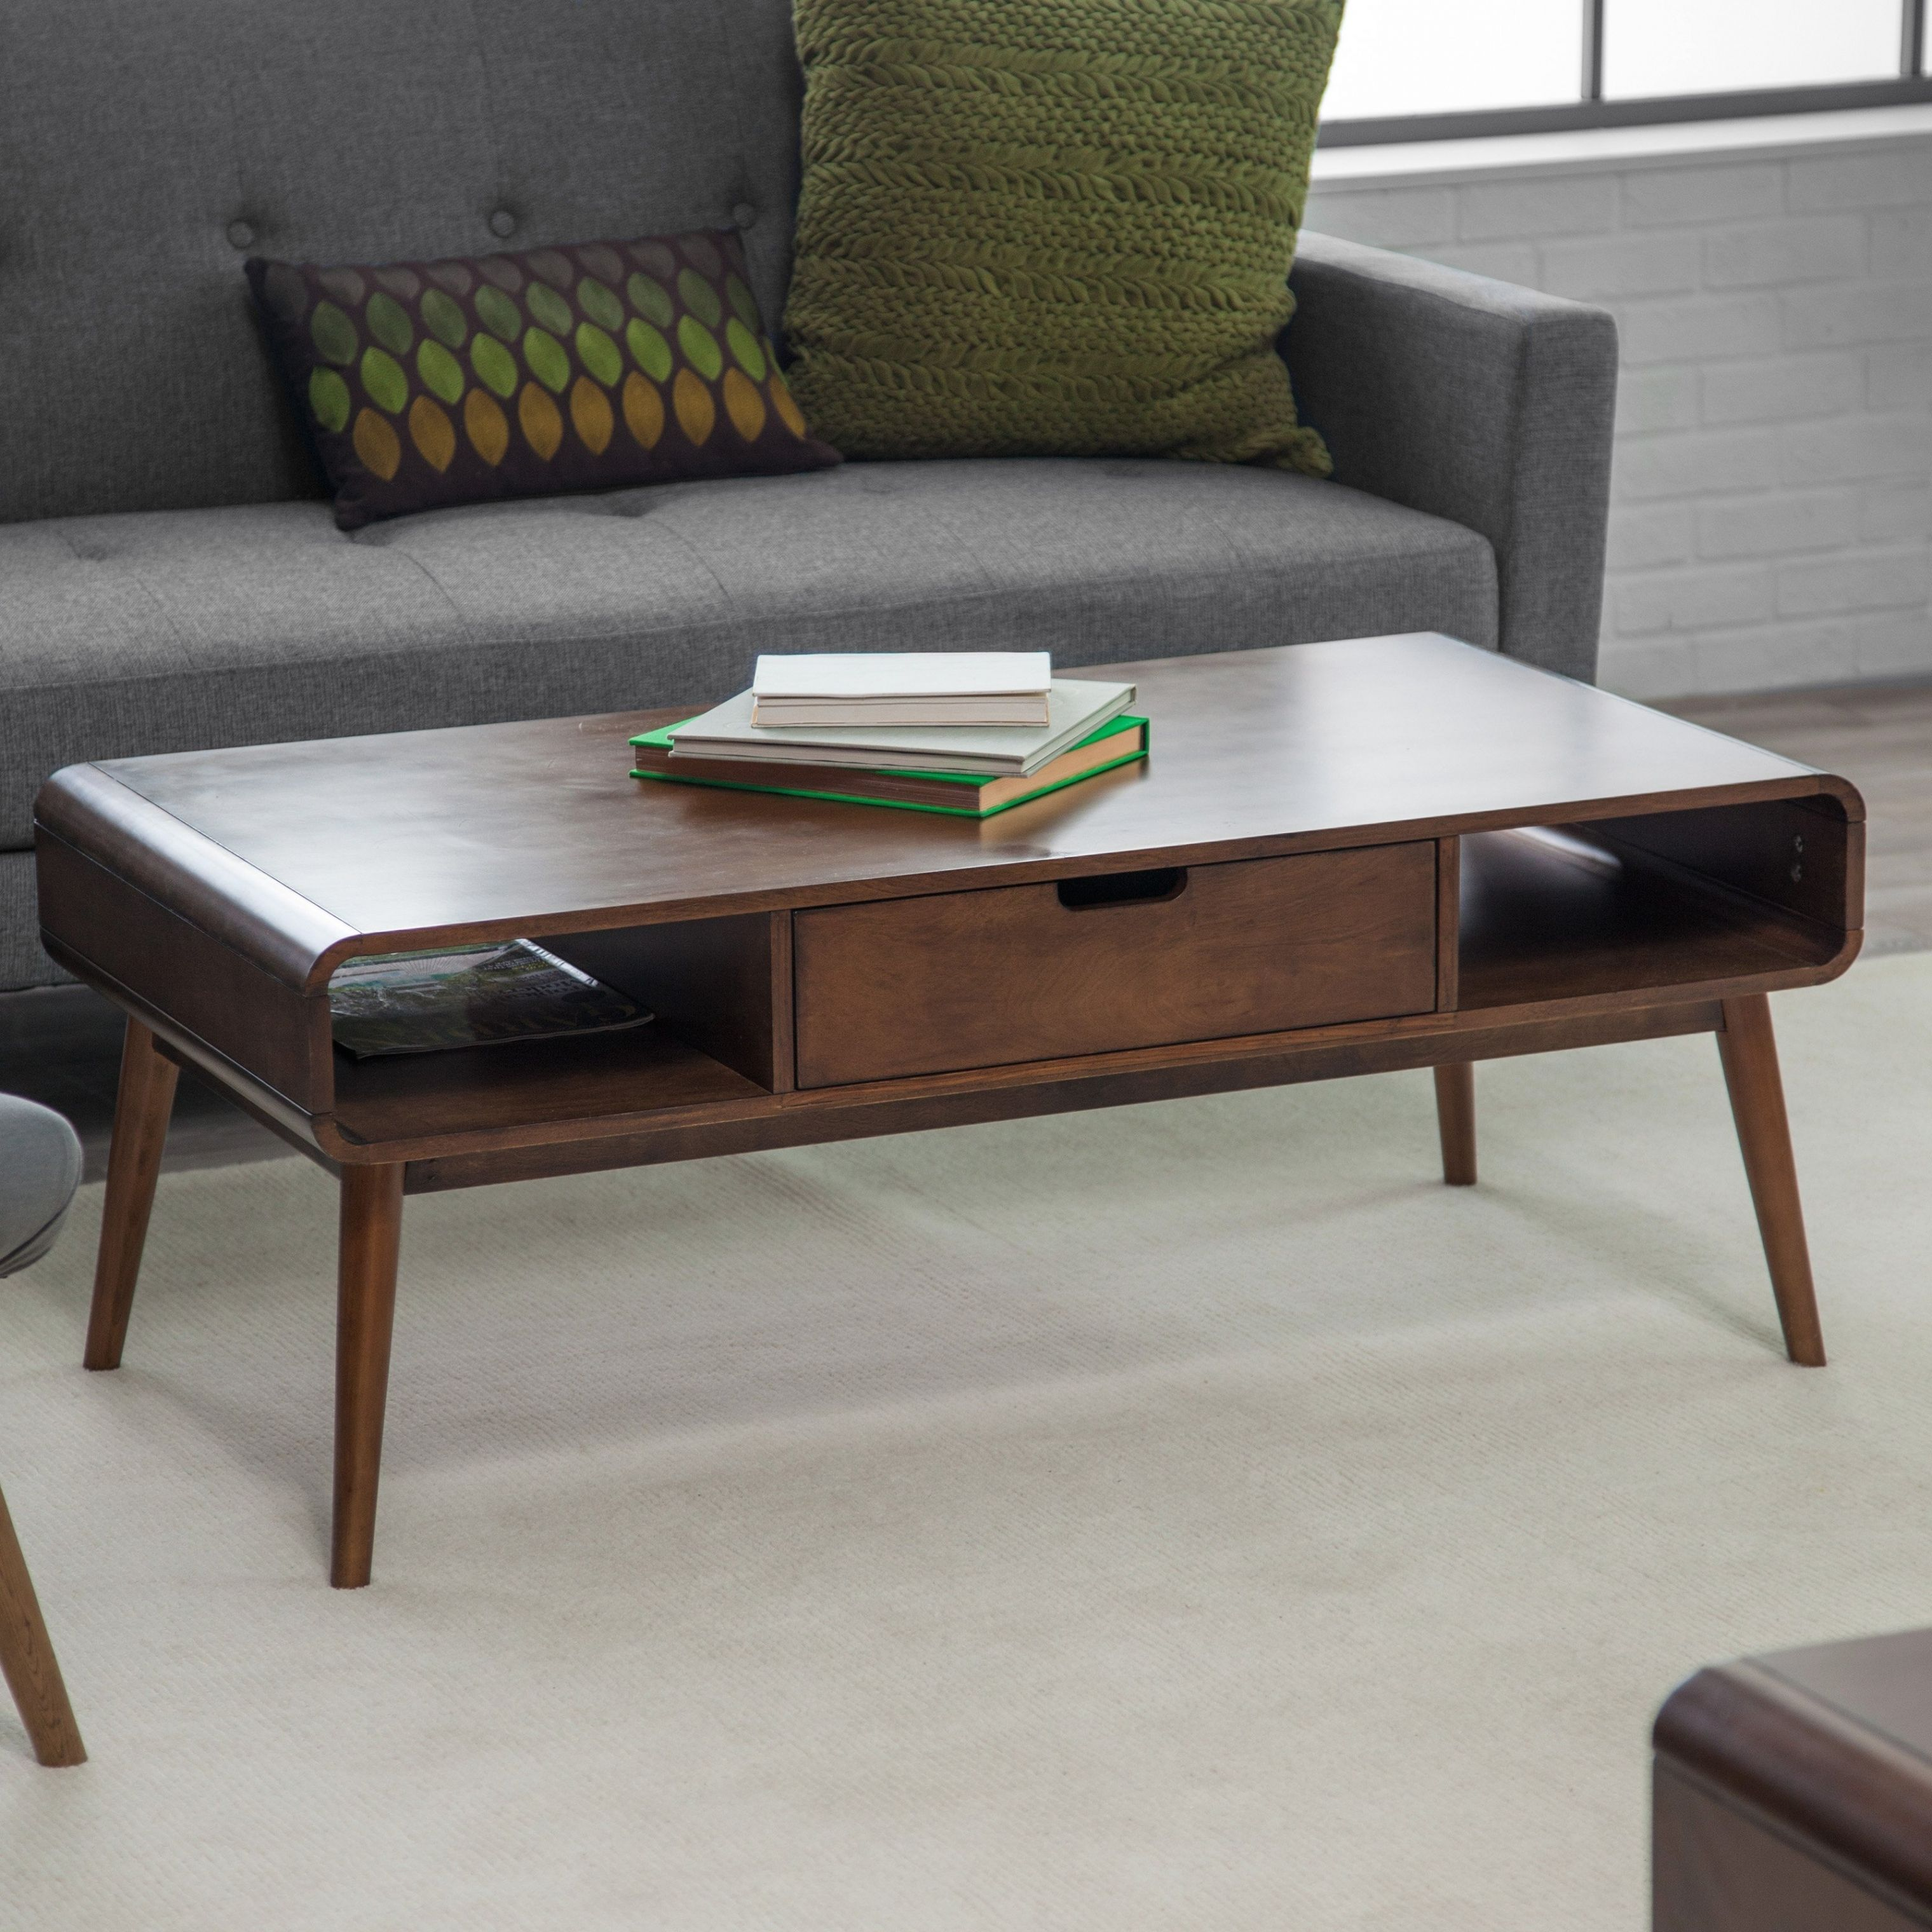 Image result for midcentury modern coffee table with storage